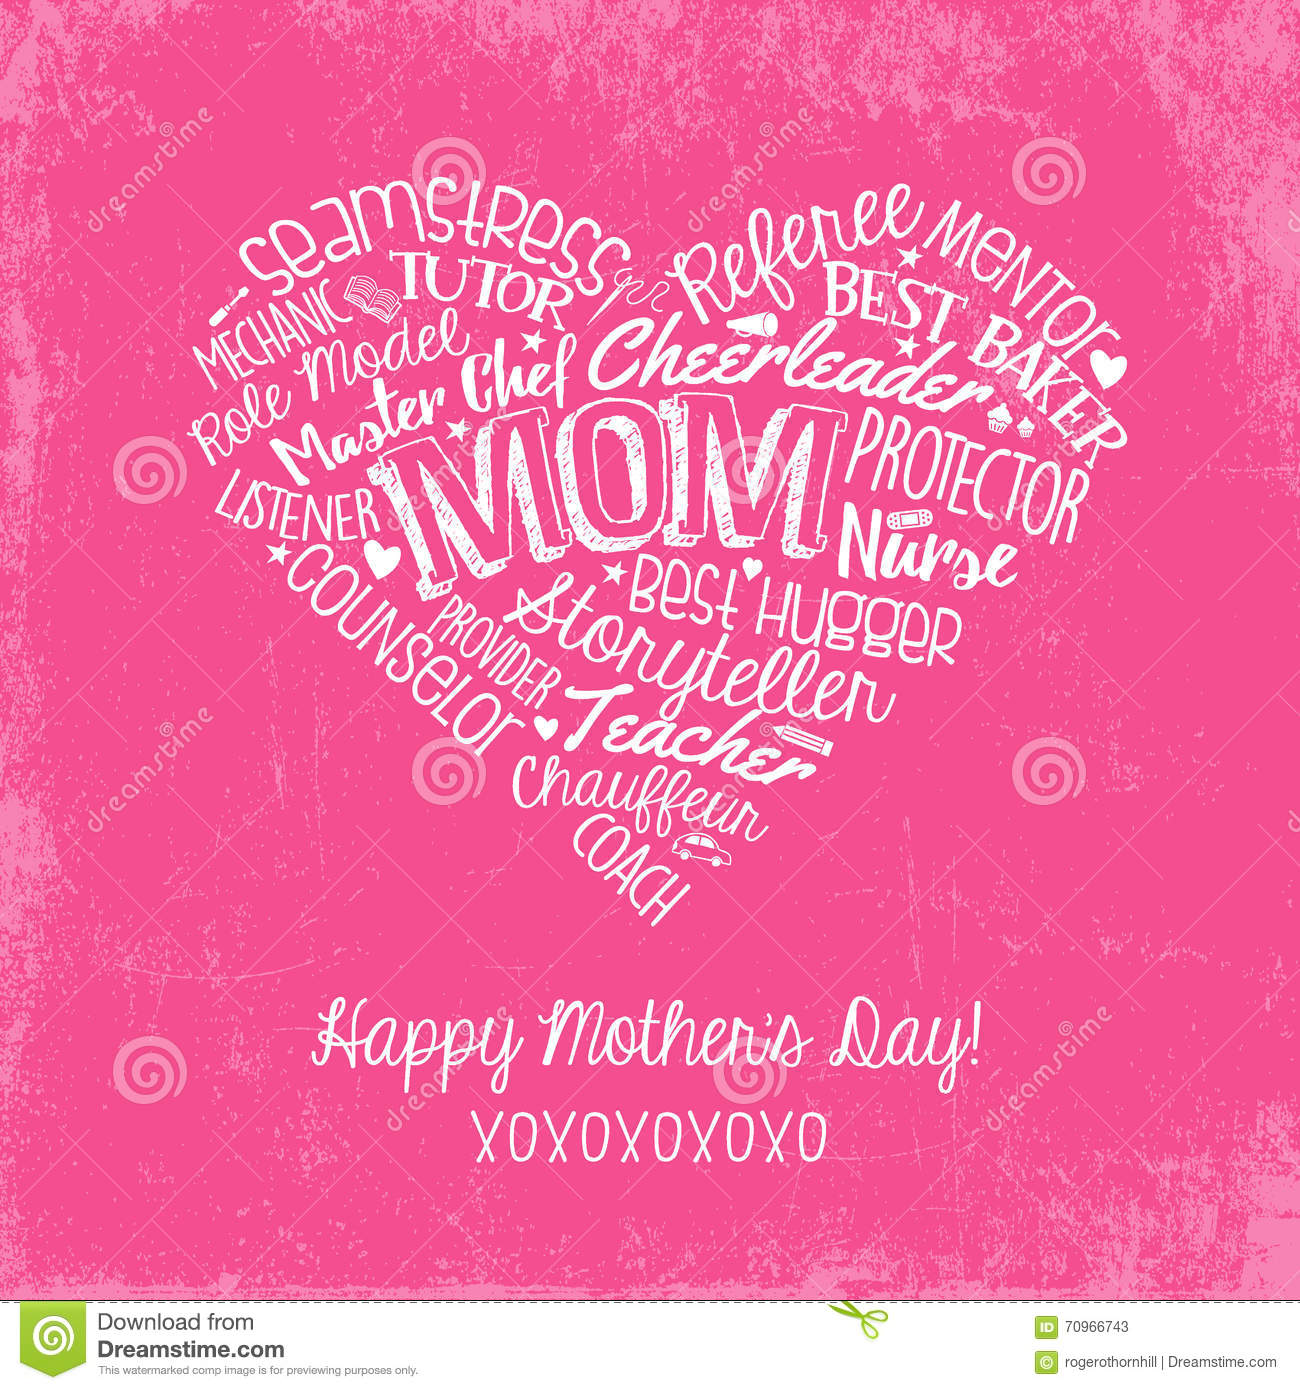 Happy Mothers Day Card With Handwritten Words Stock Vector